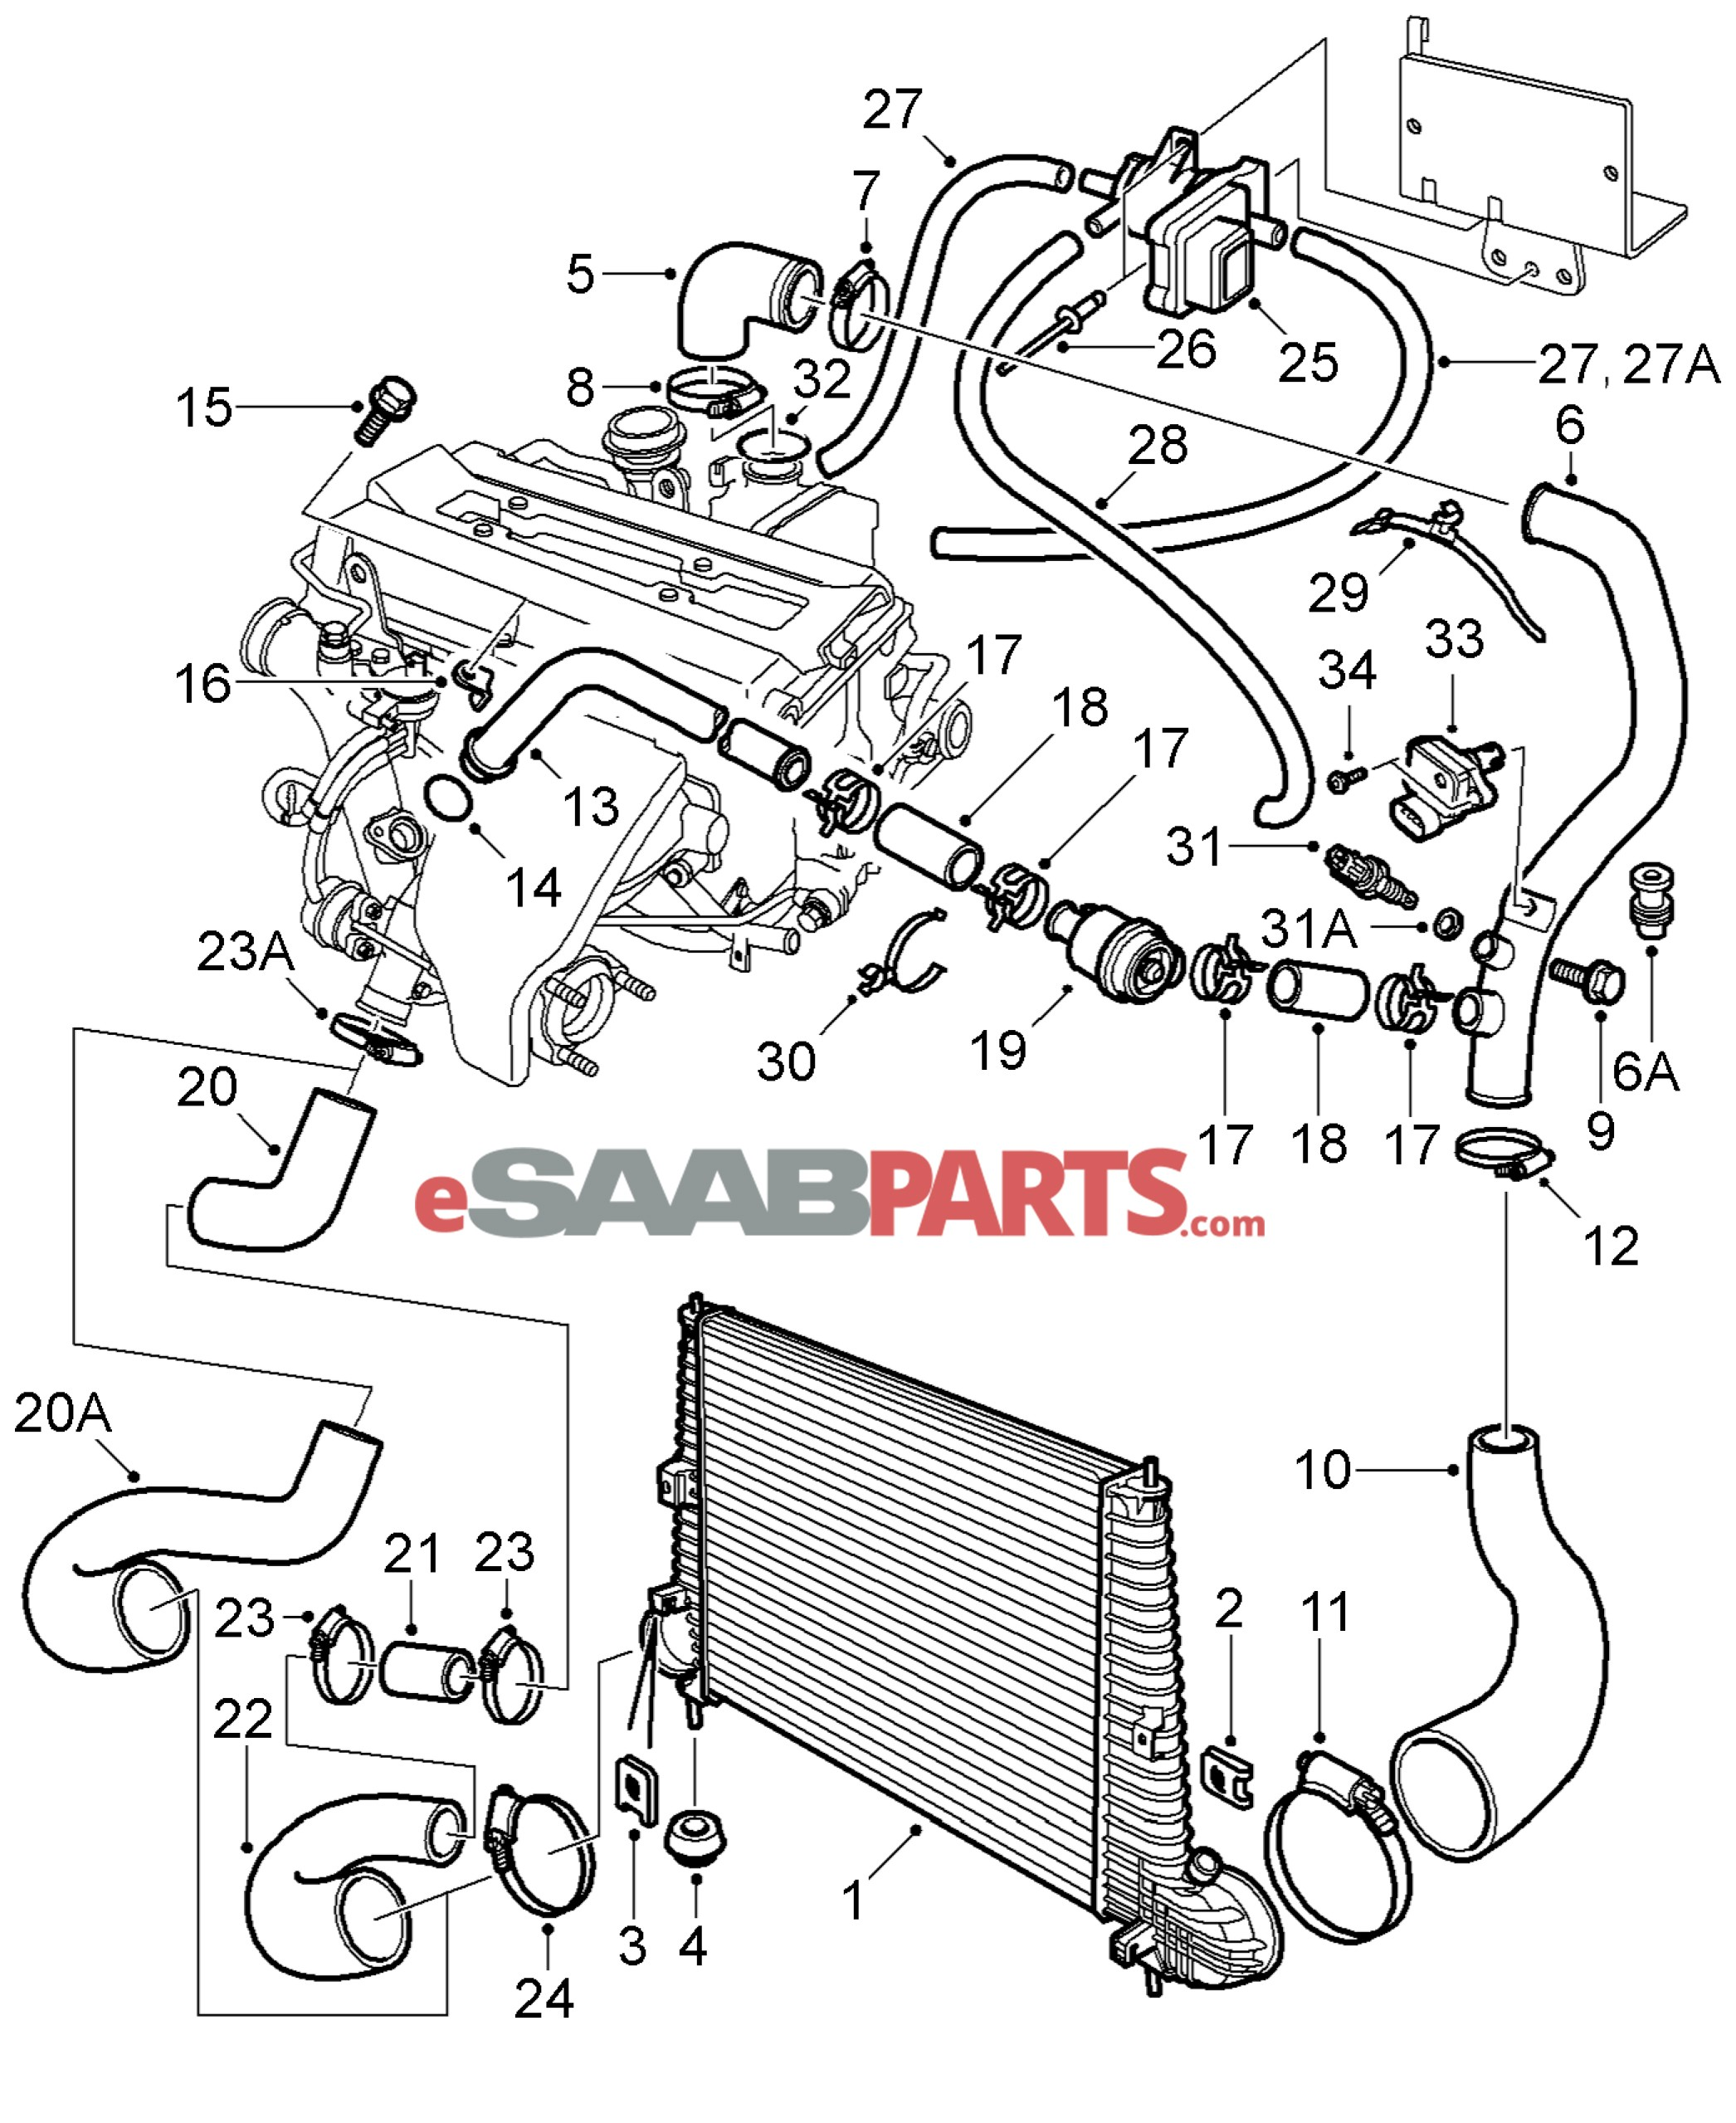 2004 Mazda Tribute Engine Diagram Wiring Harness Schematics 2000 Mpv Bottom View Emmision Page 4 And Rh Rivcas Org 2006 3